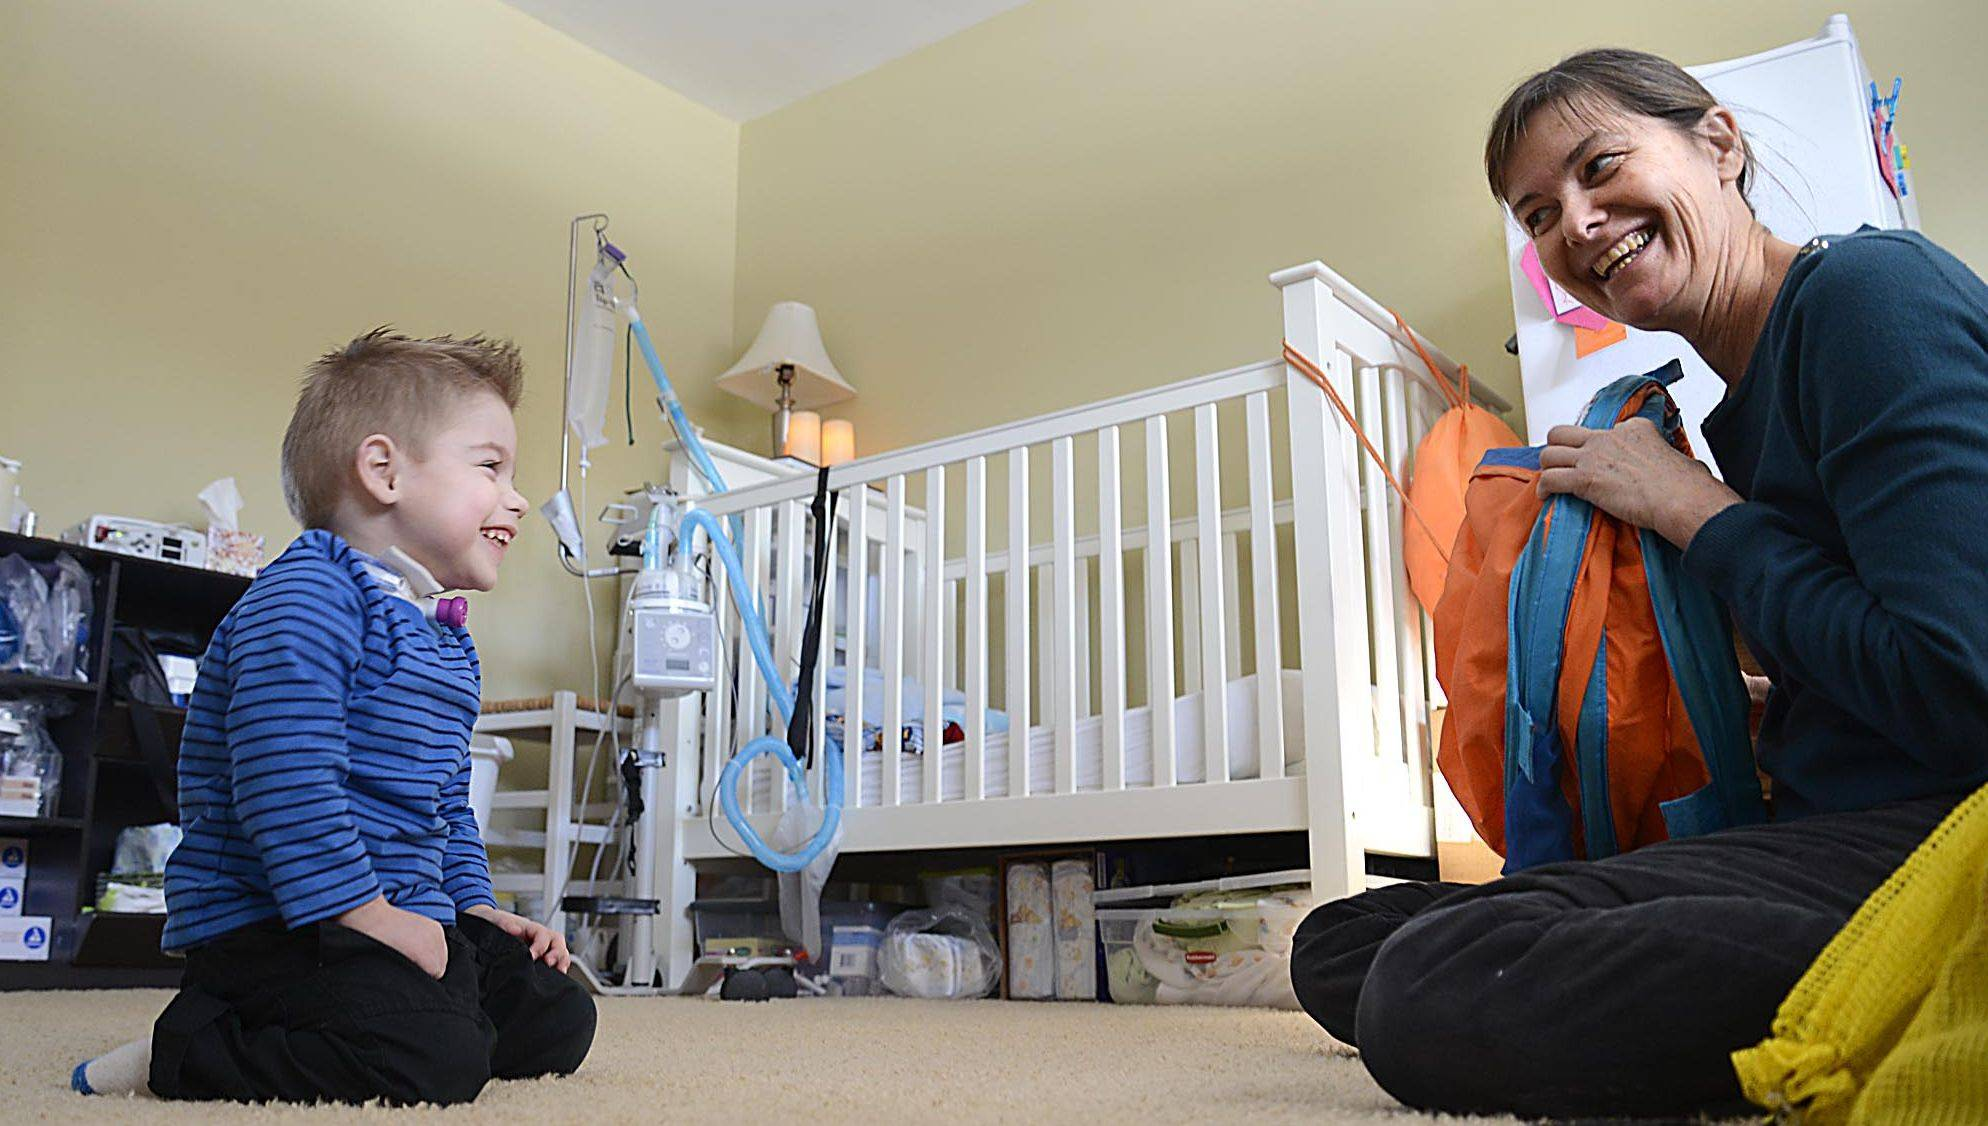 Andrew Rigler laughs when he spots the tunnel he uses for developmental therapy in his Bartlett home.